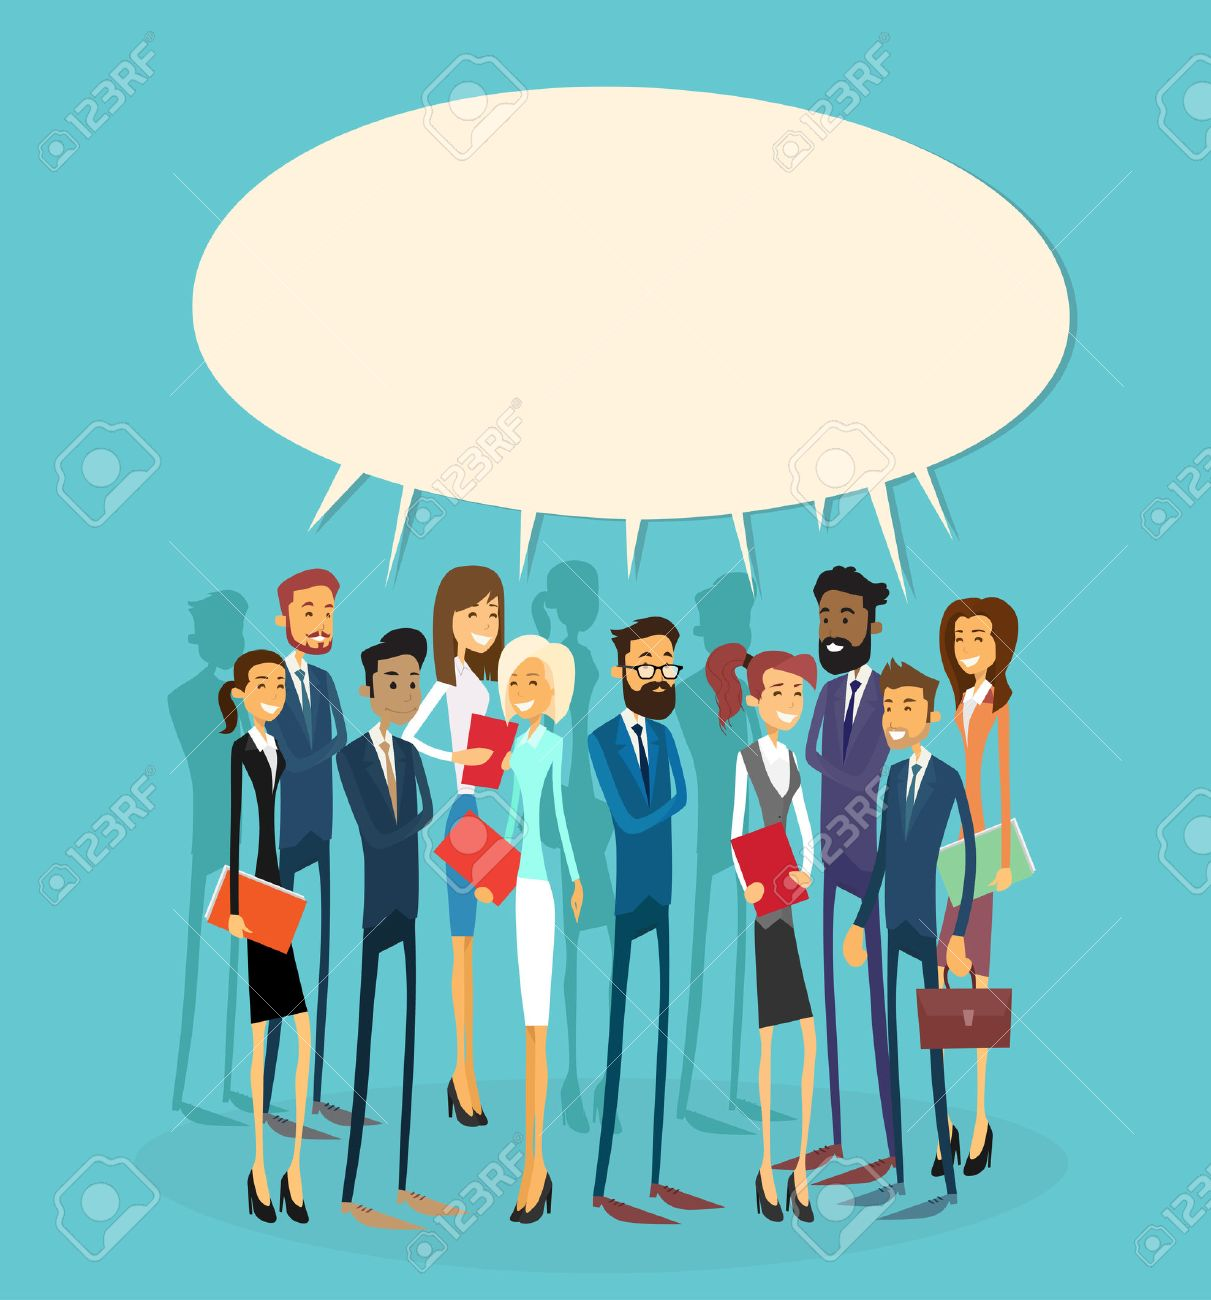 Business People Group Chat Communication Bubble Concept, Businesspeople Talking Discussing Communication Social Network Flat Vector Illustration Stock Vector - 47913661